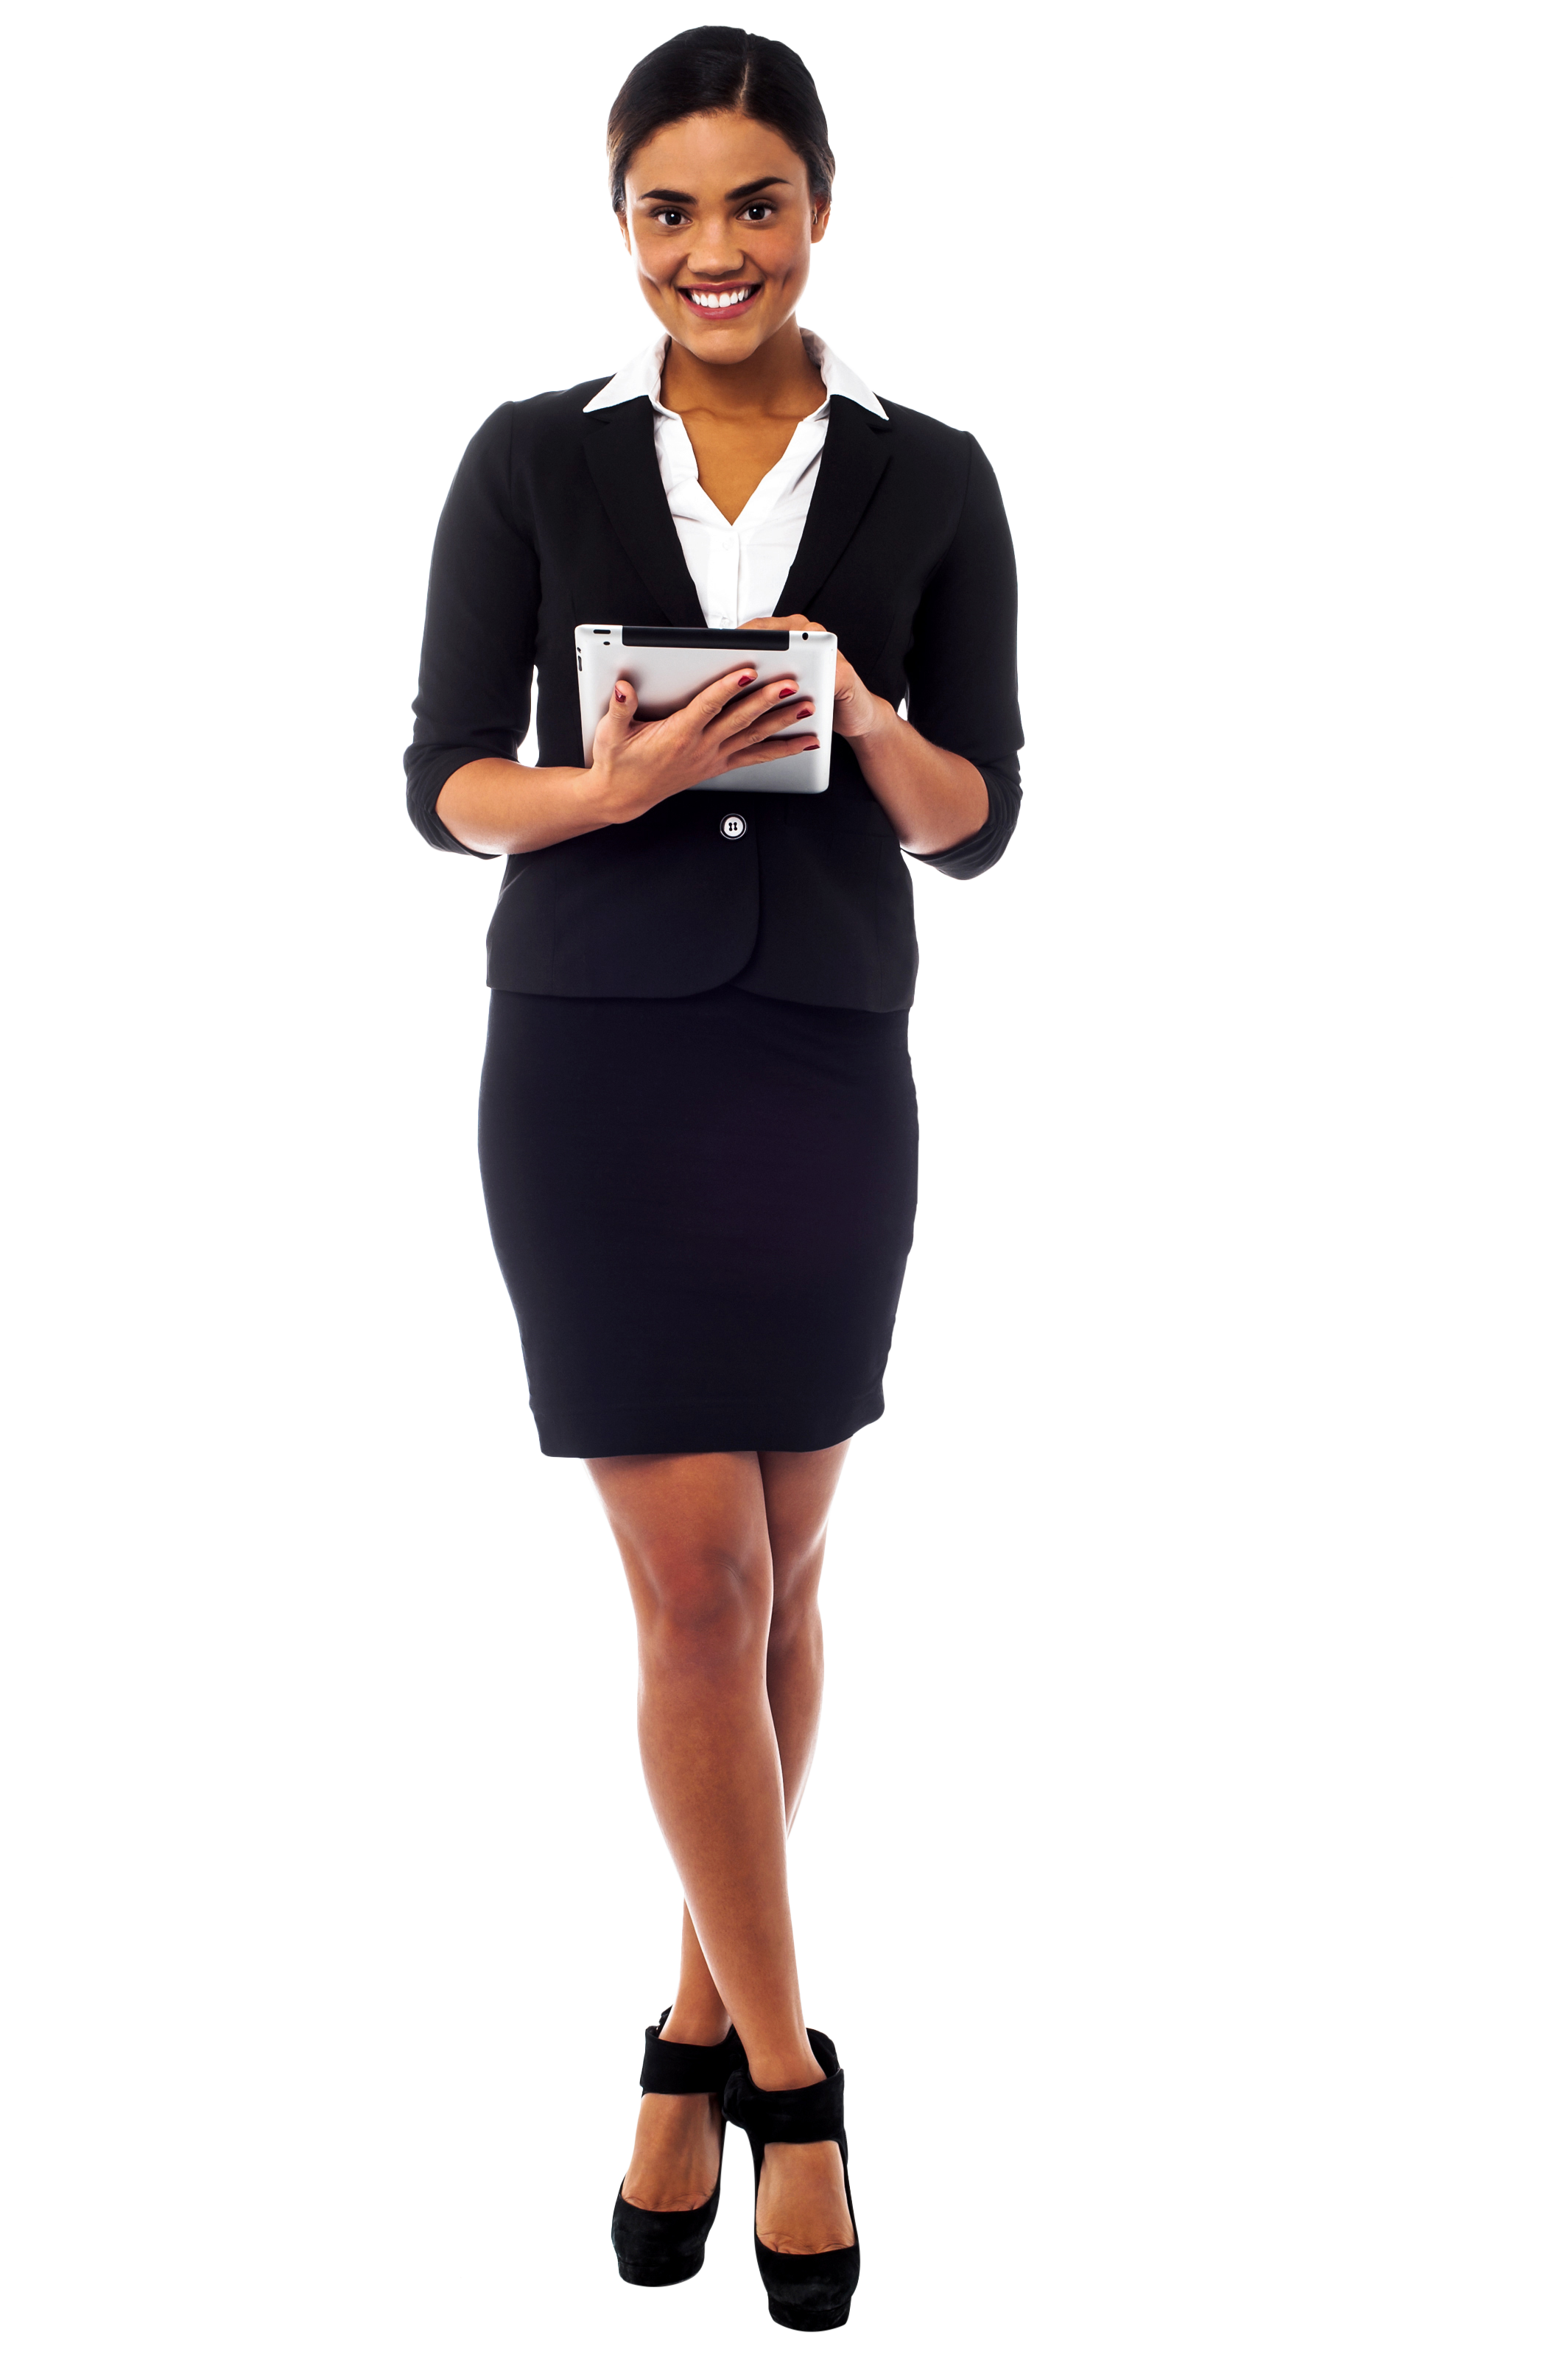 Standing Girl PNG Image